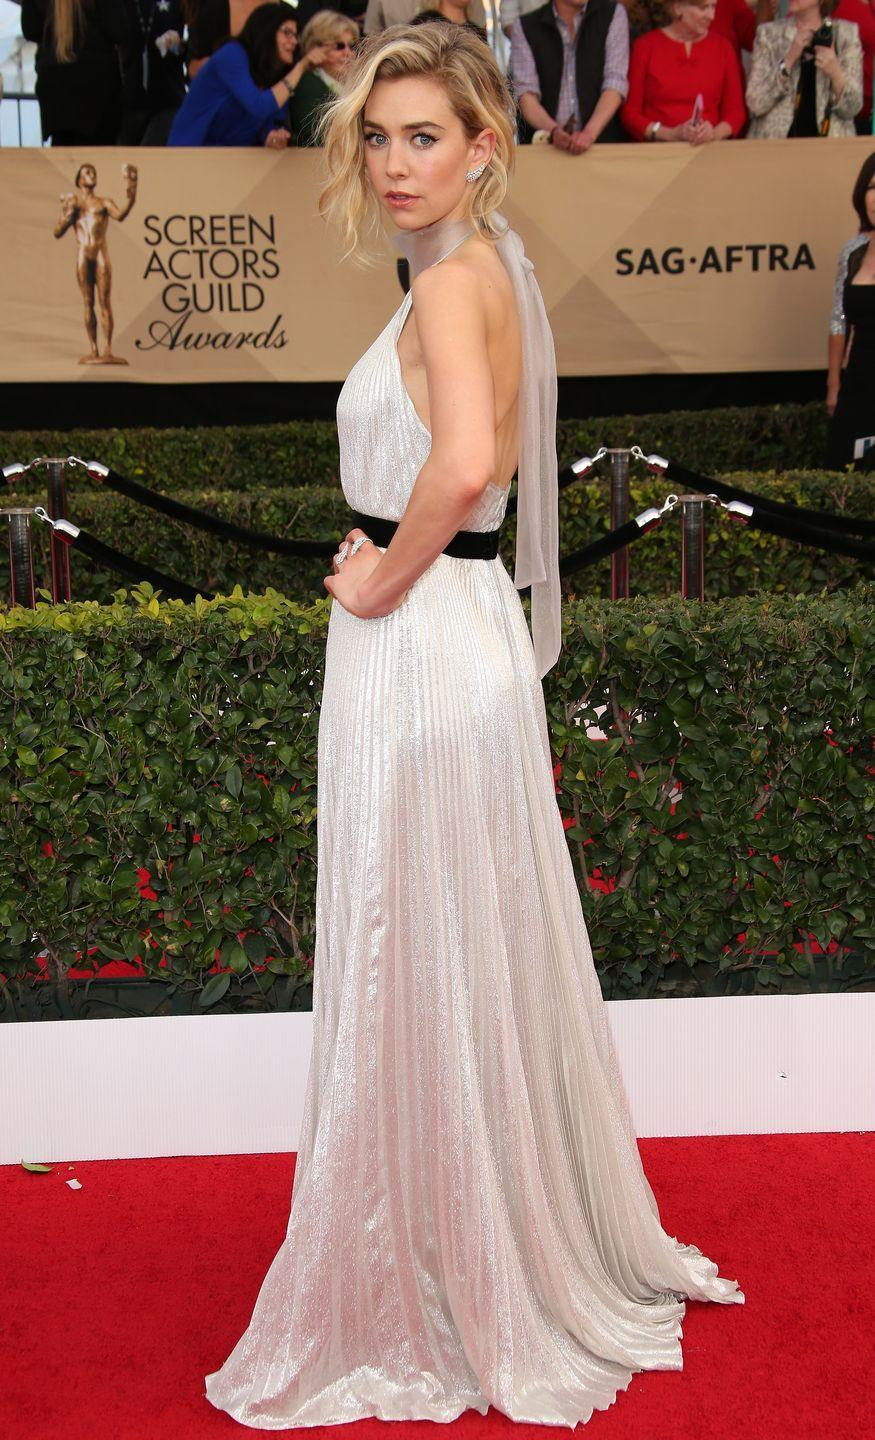 <p>Kirby wears a dress by Luisa Beccaria to the 23rd Annual Screen Actors Guild Awards.</p>